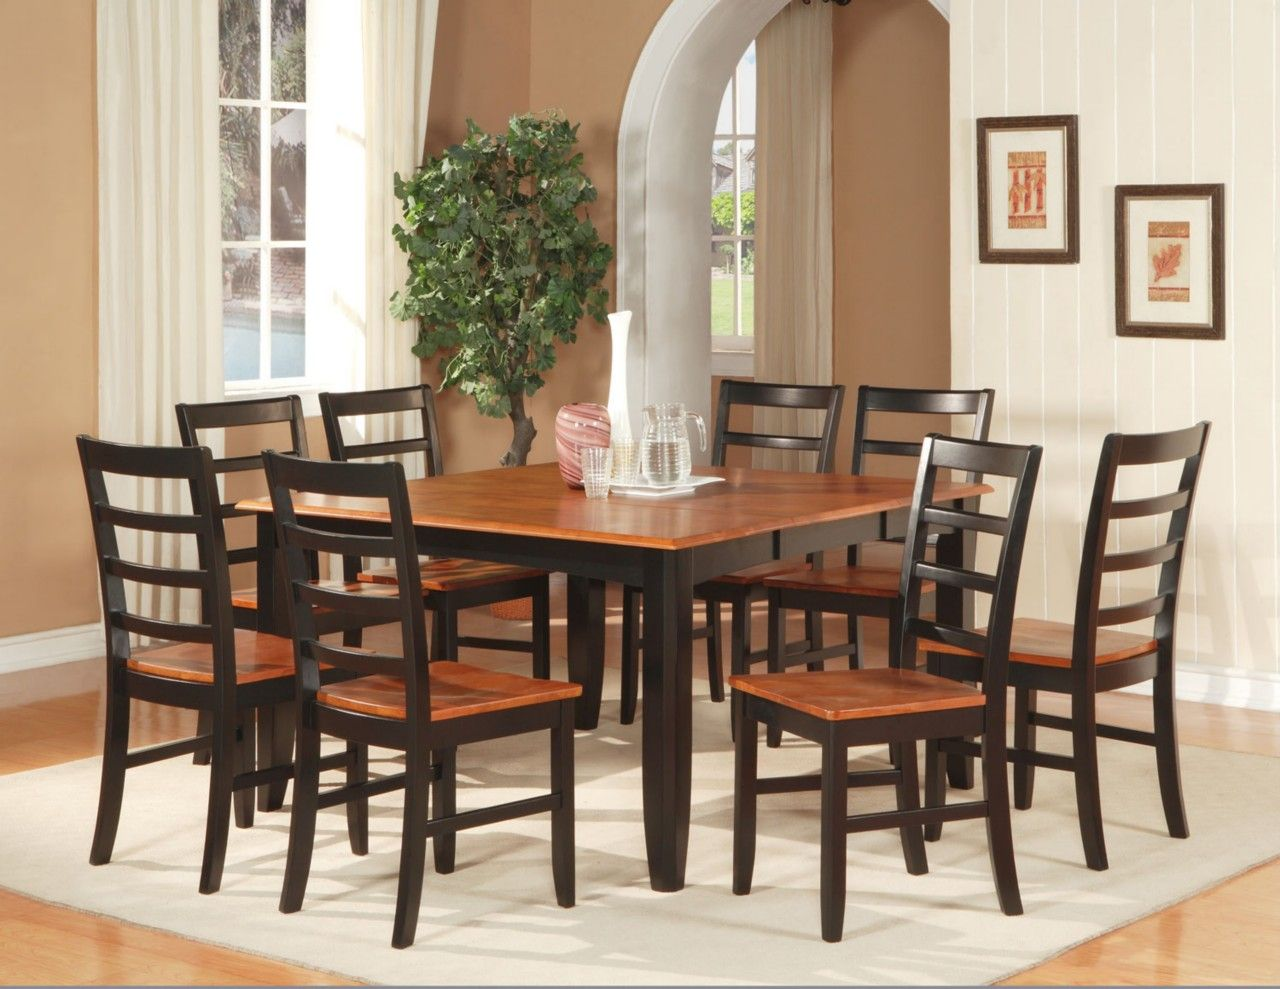 High Quality Details About 9 PC SQUARE DINETTE DINING ROOM TABLE SET AND 8 CHAIRS#2  Dining